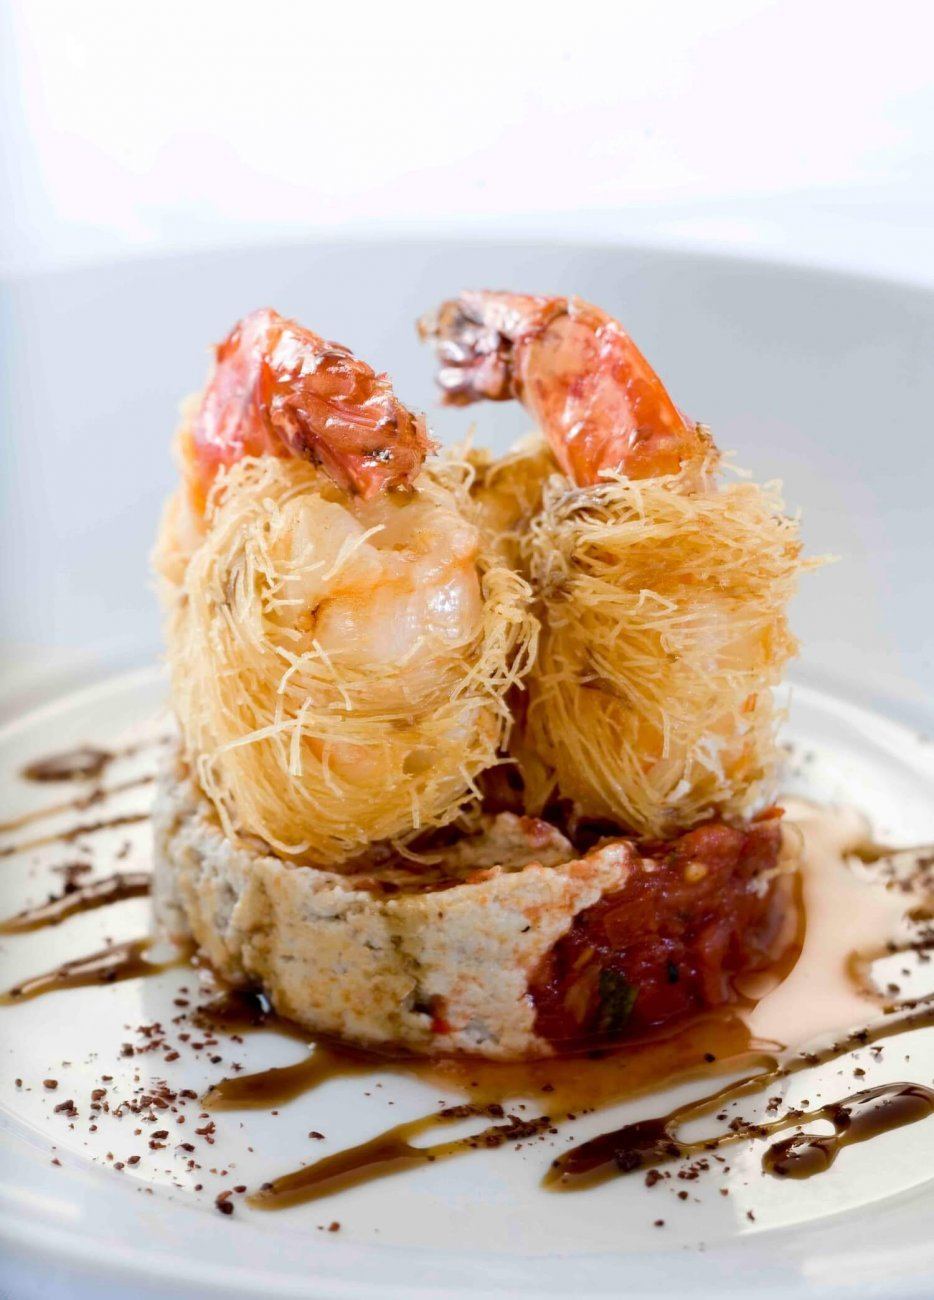 KADAYIFLI KARIDES: KADAYIF WRAPPED KING PRAWNS ON WALNUT CAPSICUM DIP